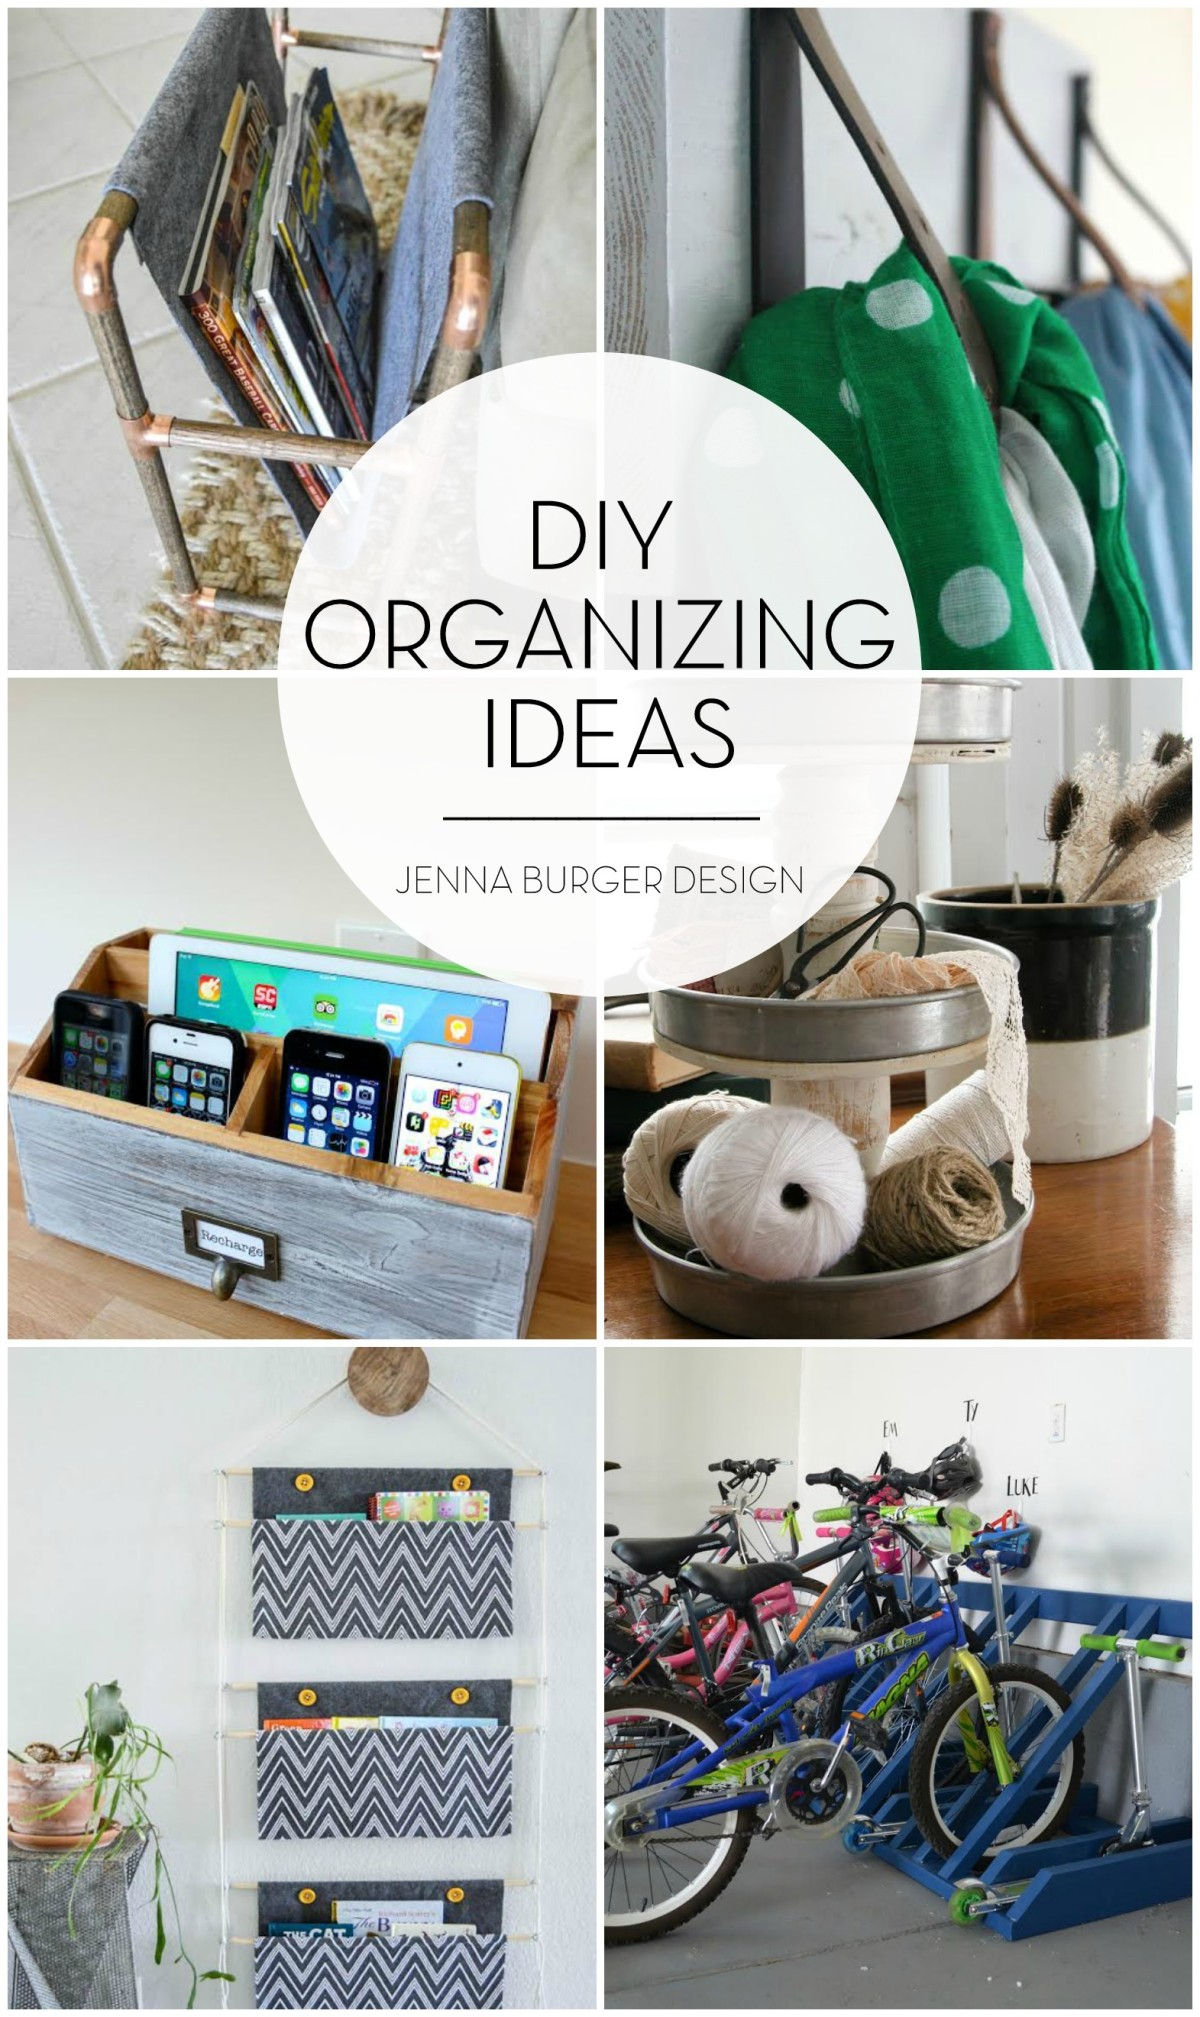 Diy organizing ideas jenna burger diy organizing ideas for every room of the house awesome do it yourself solutioingenieria Image collections